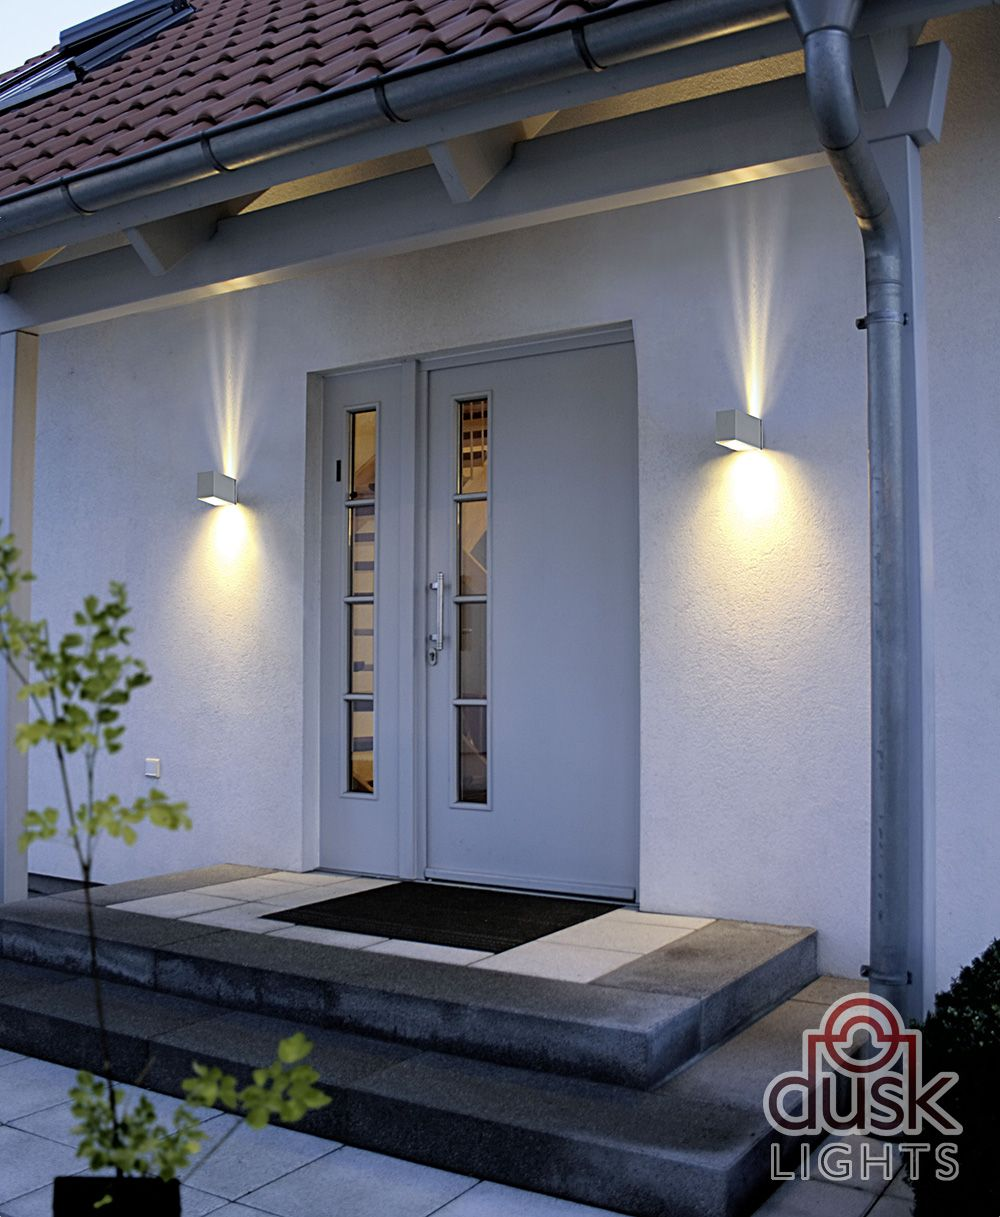 Modern Wall Light Ideas: Eglo Tabo 1 Exterior Up And Down Wall Light